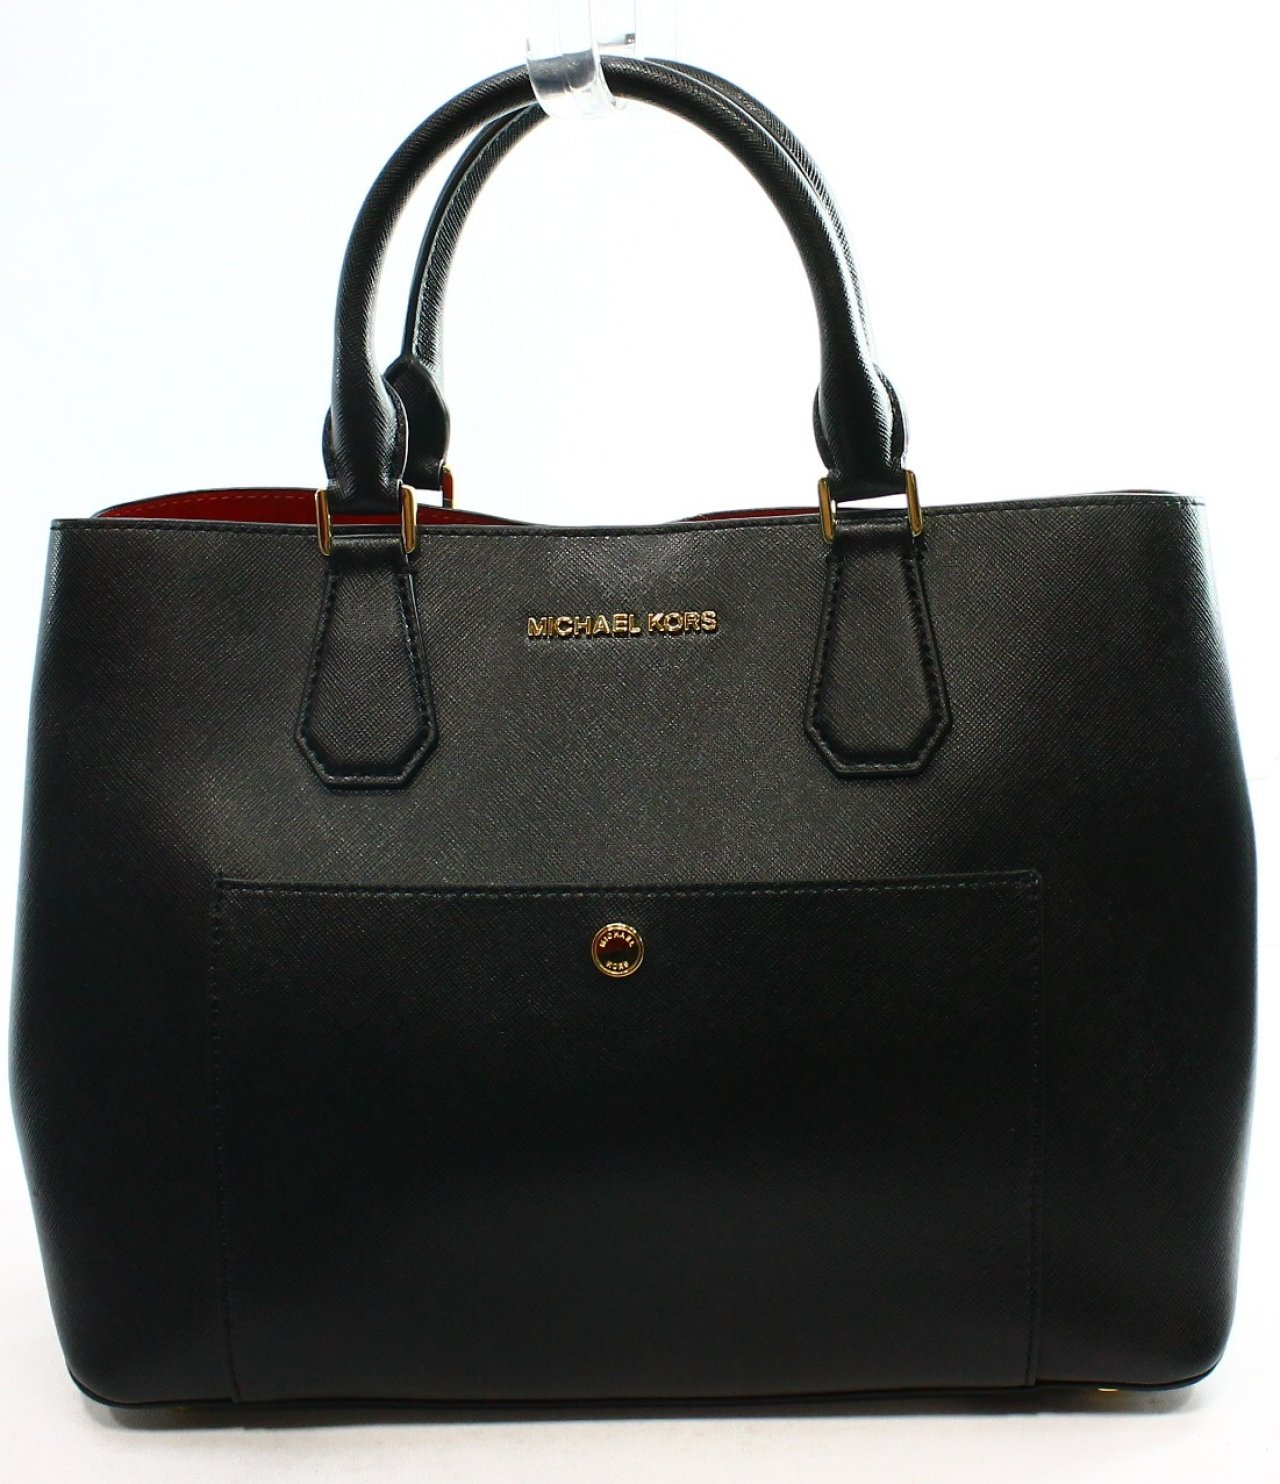 michael kors new black saffiano large greenwich handbag. Black Bedroom Furniture Sets. Home Design Ideas